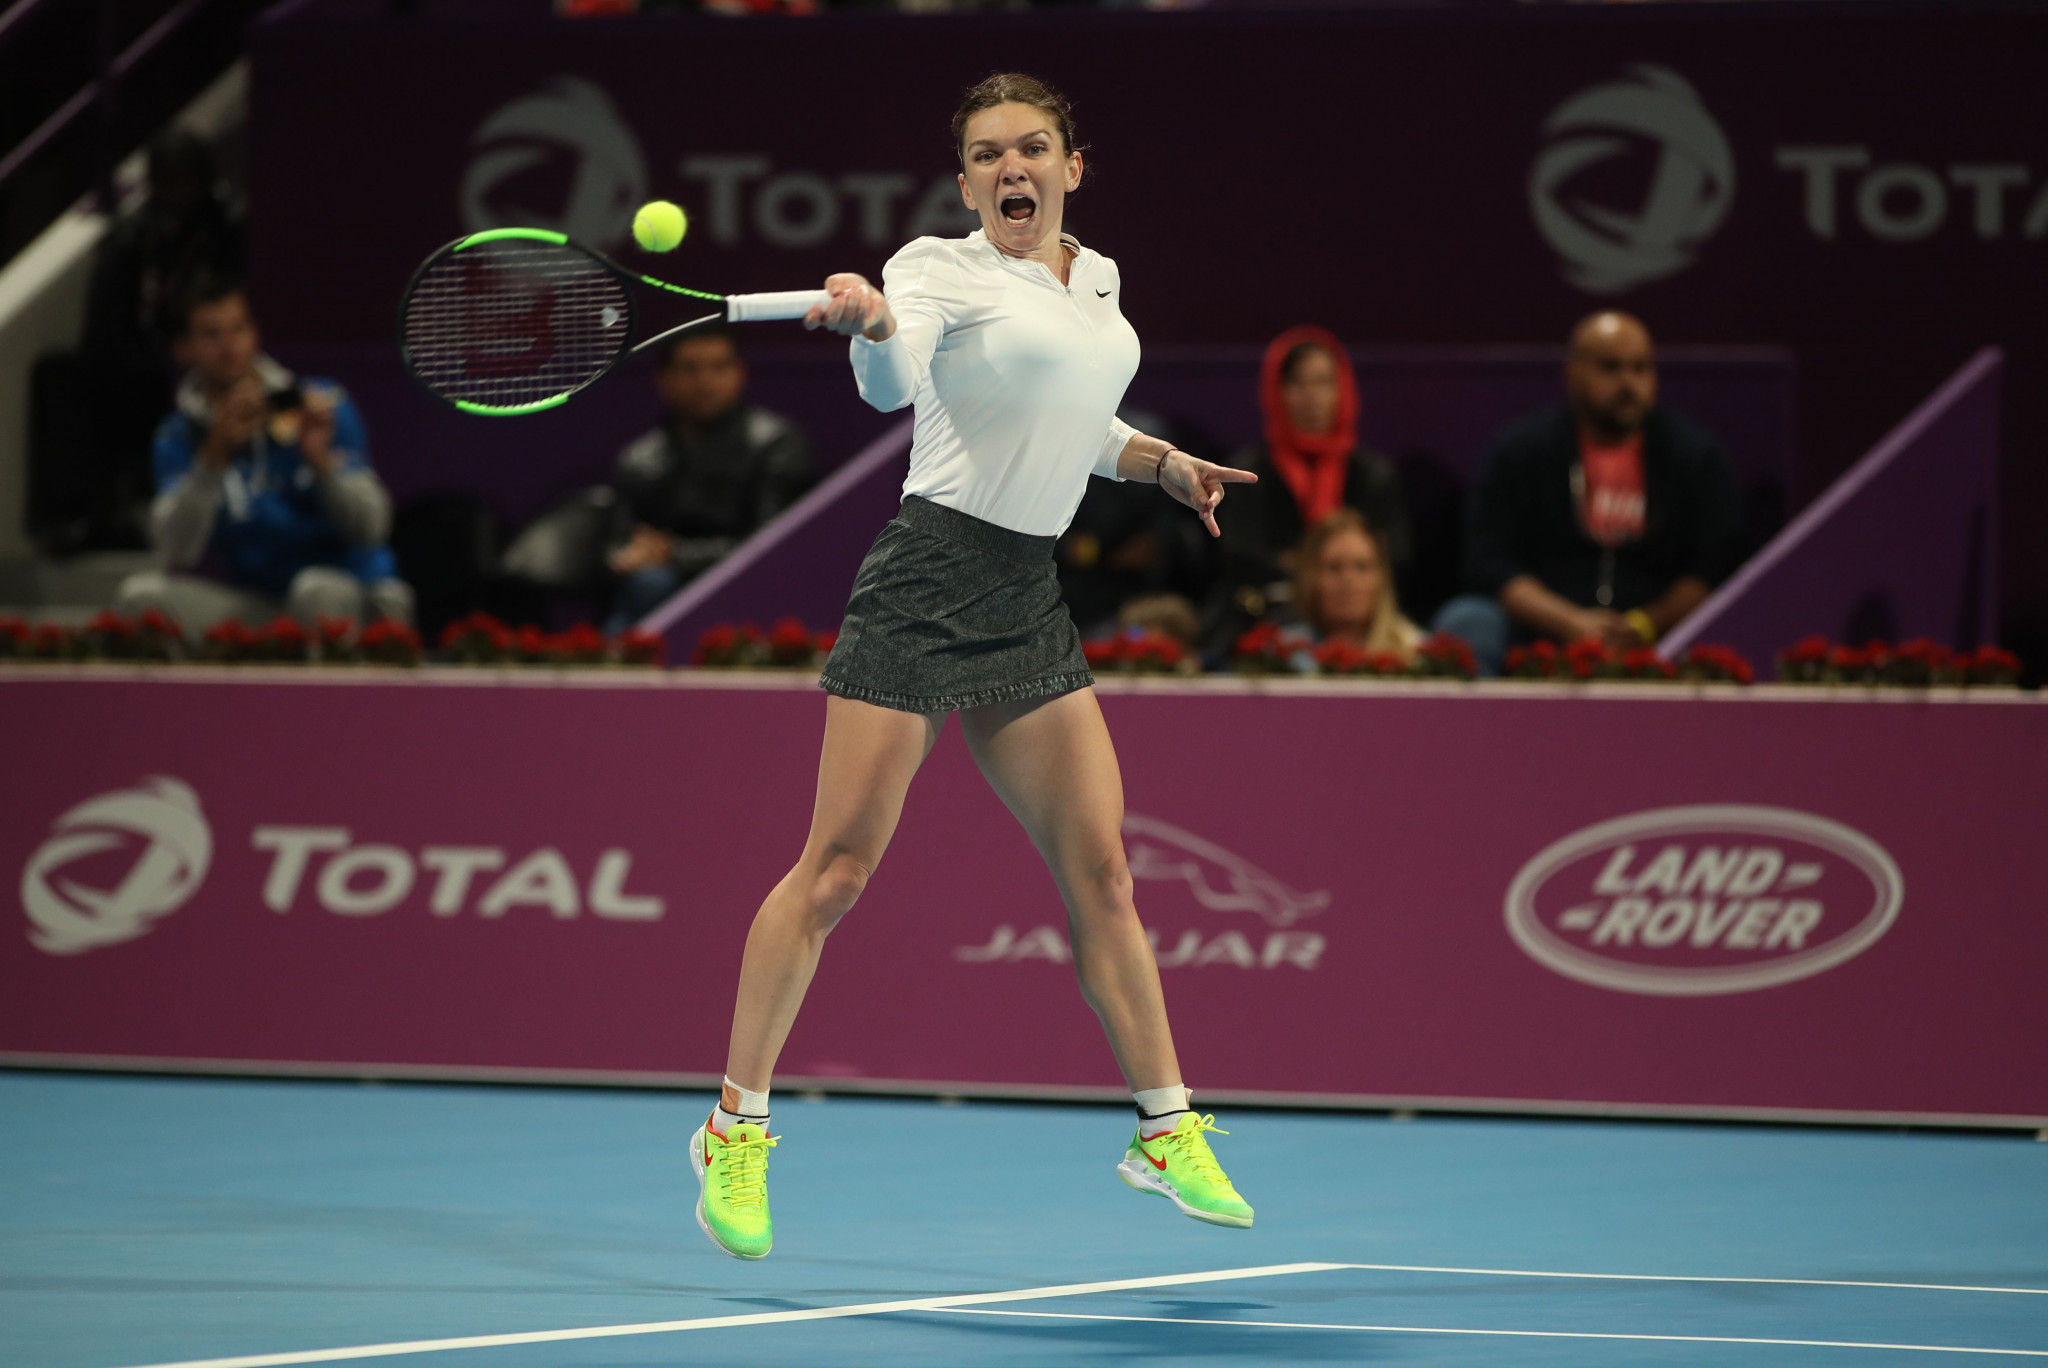 Top seed Simona Halep of Romania progressed to the final of the WTA Qatar Open after winning her semi-final today ©Getty Images